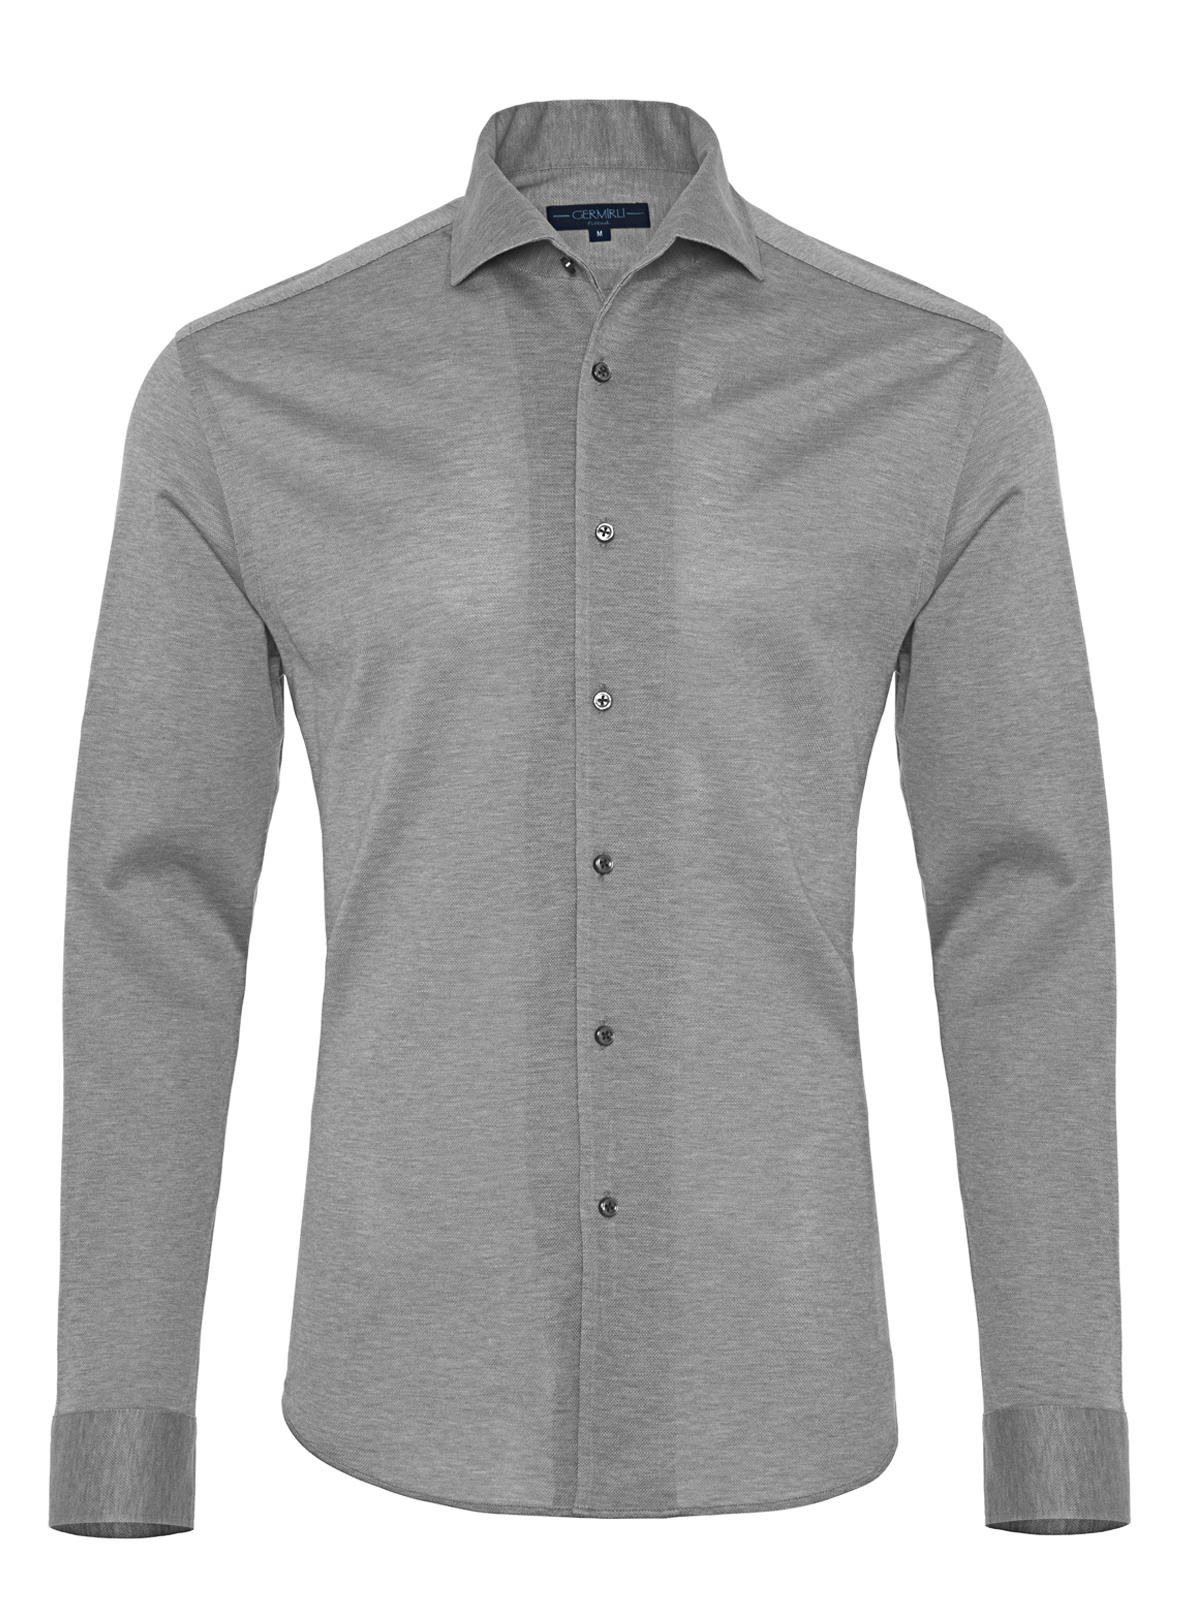 Germirli Nevapaş Spread Collar Grey Tailor Piquet Fit Knitted Shirt